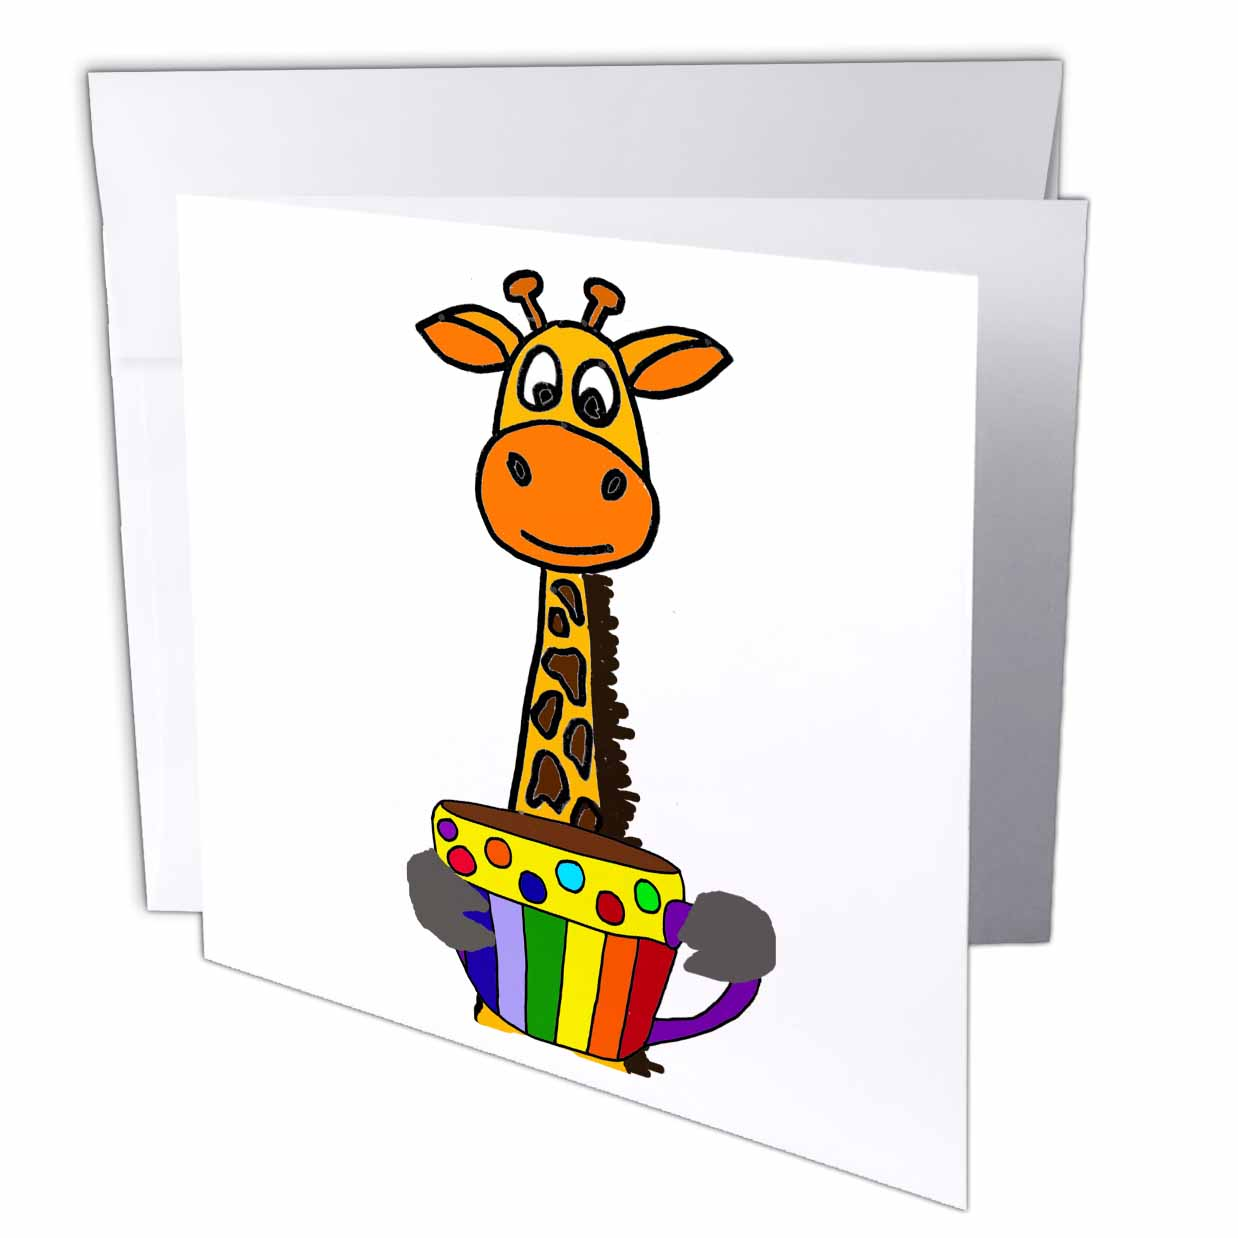 3drose Funny Giraffe Drinking Cup Of Coffee Pop Art Cartoon Greeting Cards 6 By 6 Inches Set Of 6 Walmart Com Walmart Com